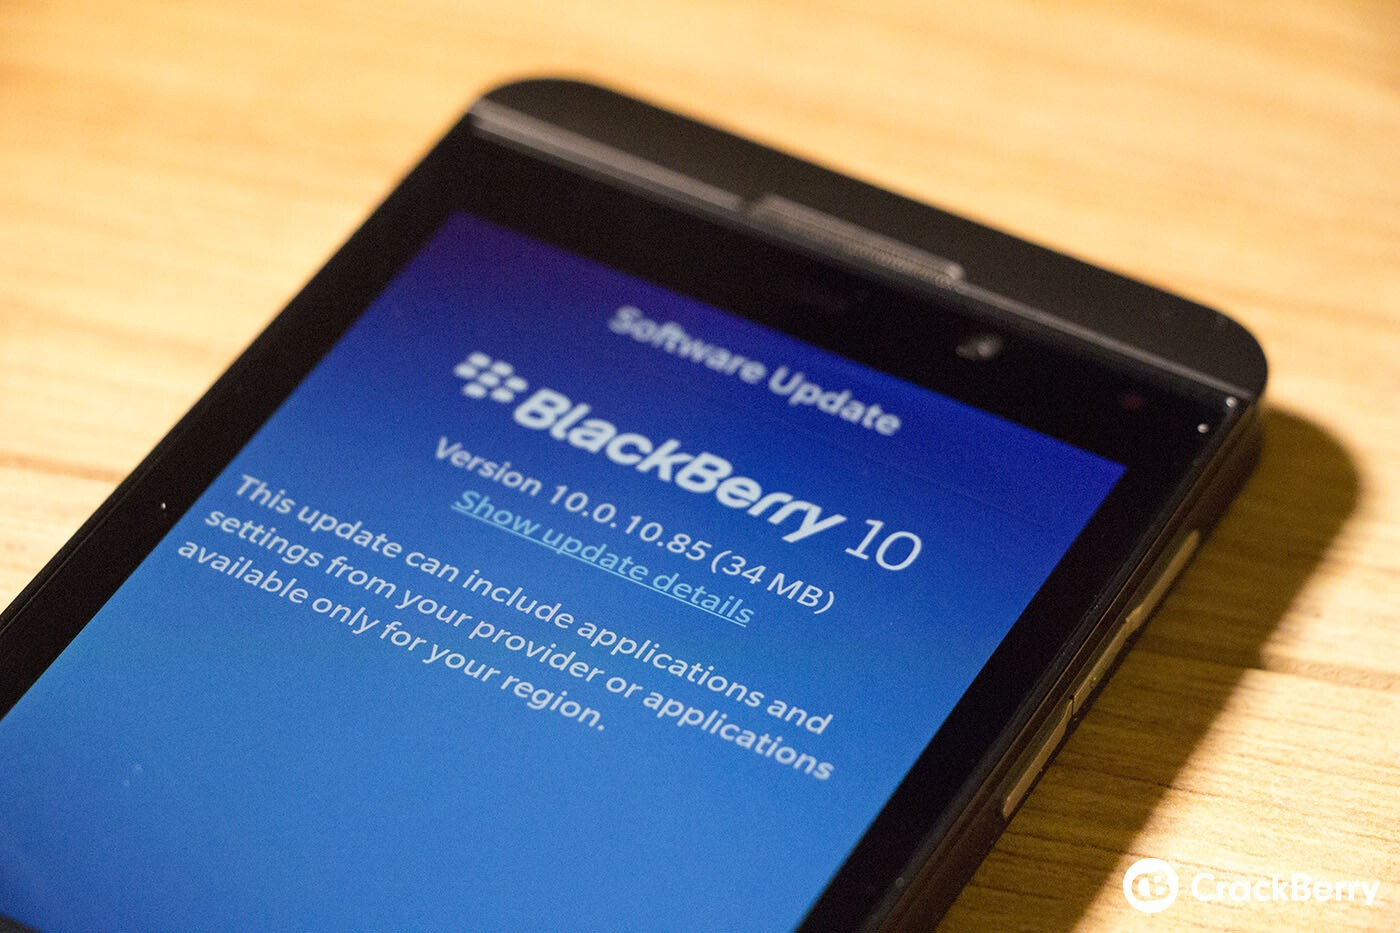 Rogers, Fido and TELUS now rolling out OS 10.0.10.672 for the BlackBerry Z10